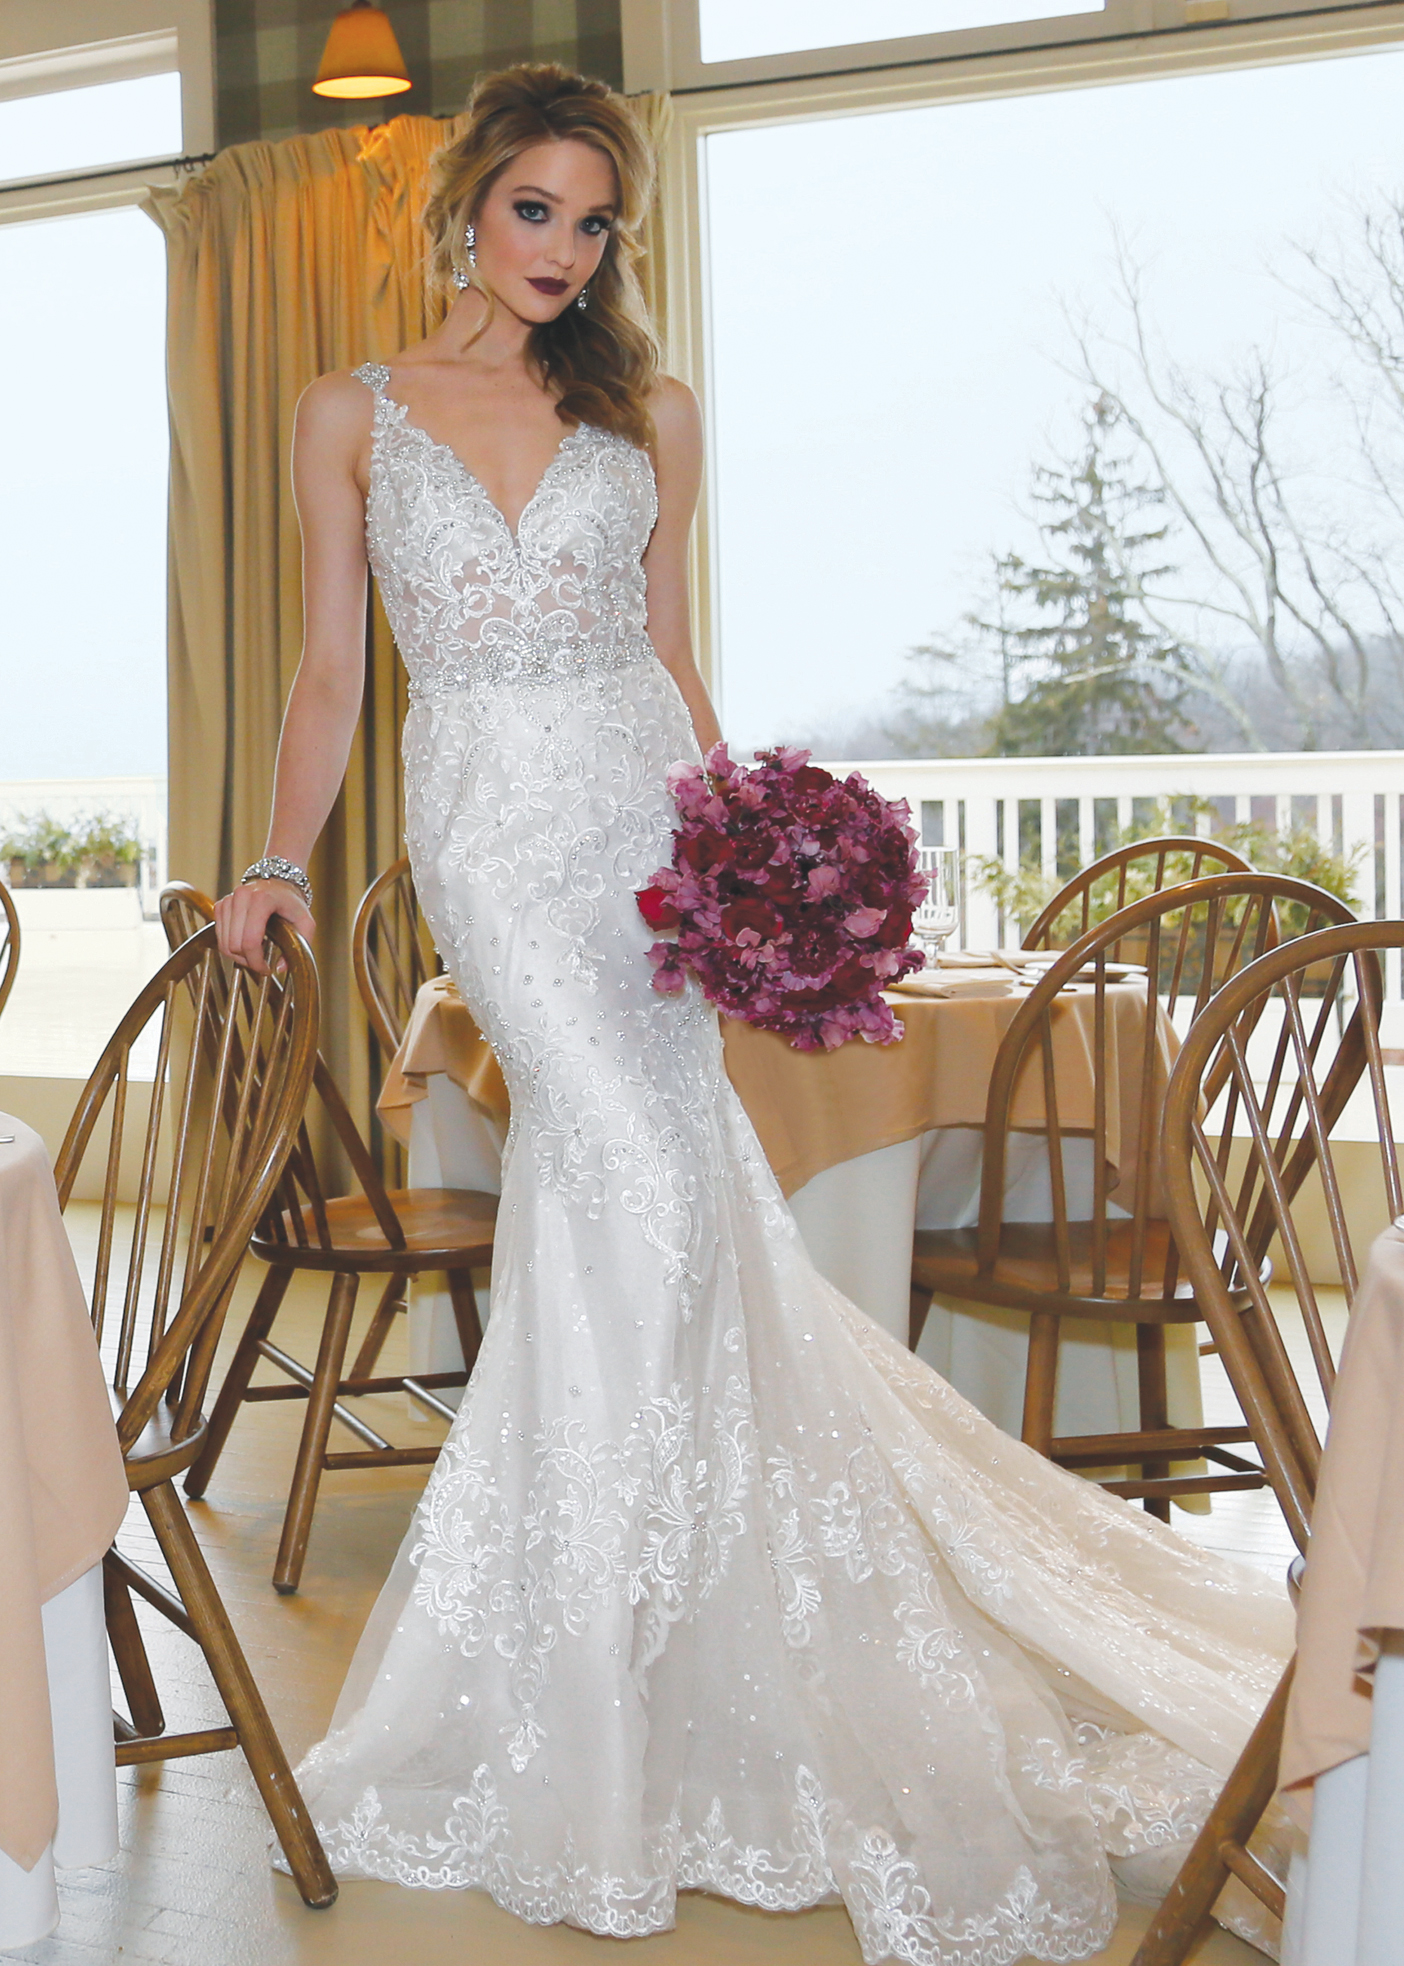 Bridal Wedding Gowns New York, New Jersey - Mermaid Dress